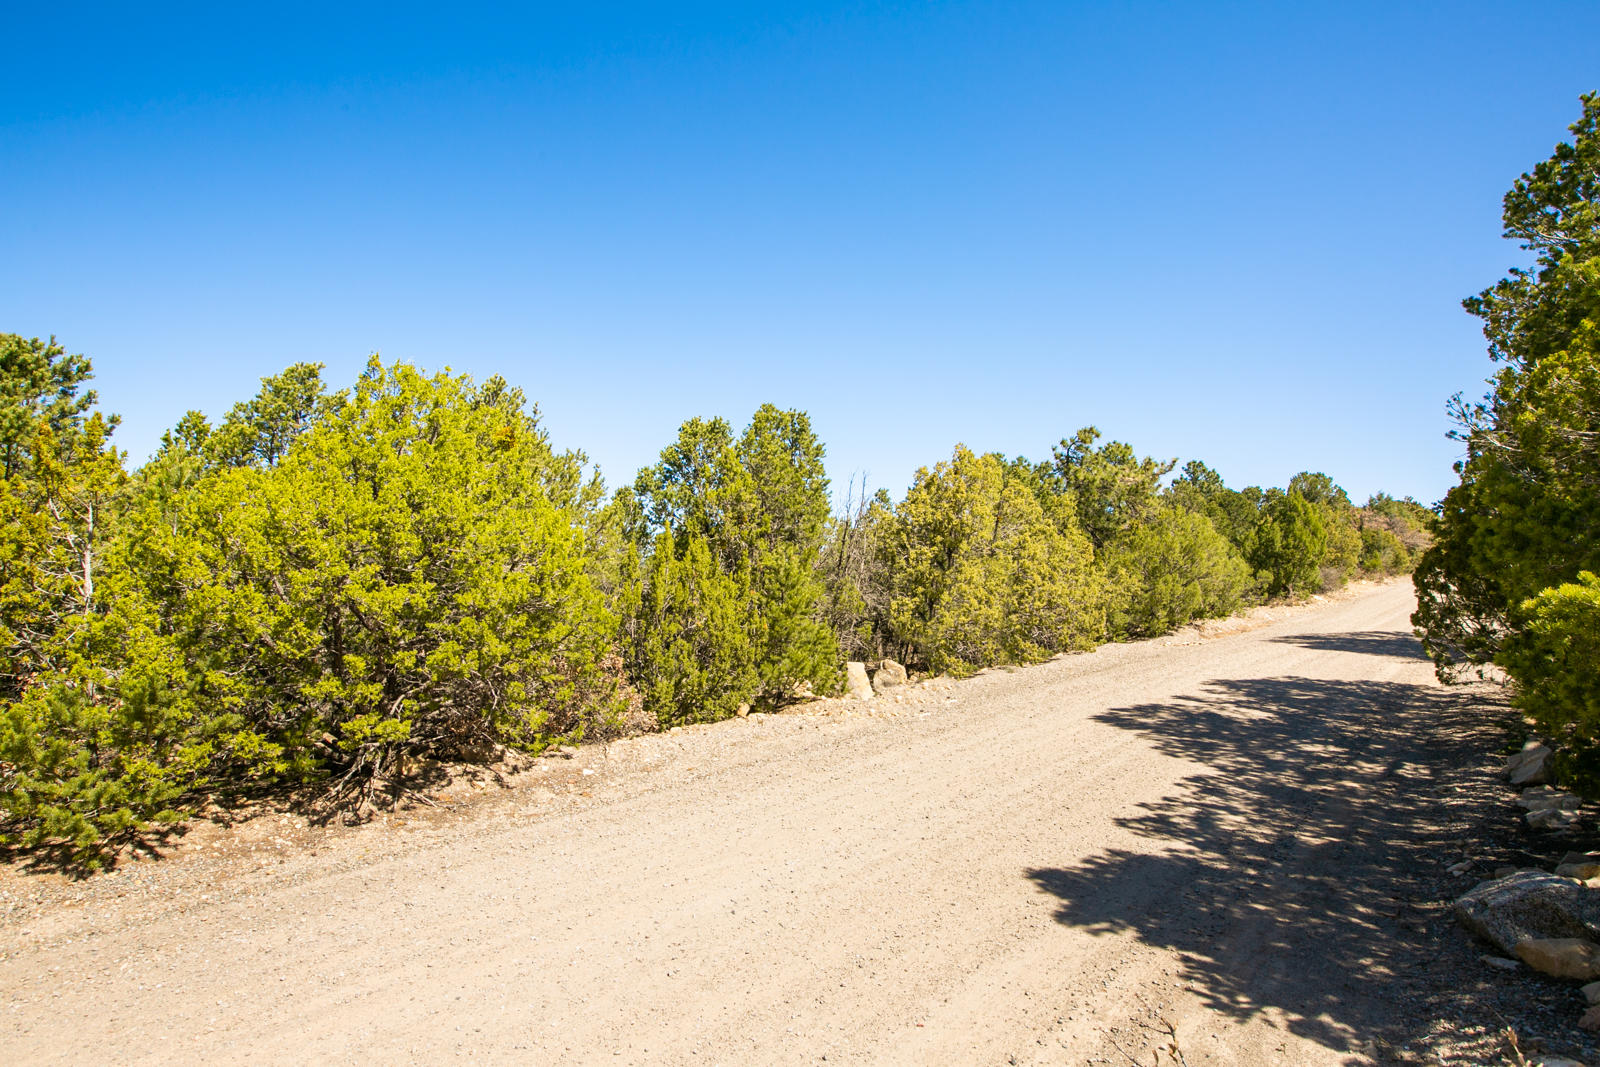 25 RIDGE Drive Property Photo - Cedar Crest, NM real estate listing